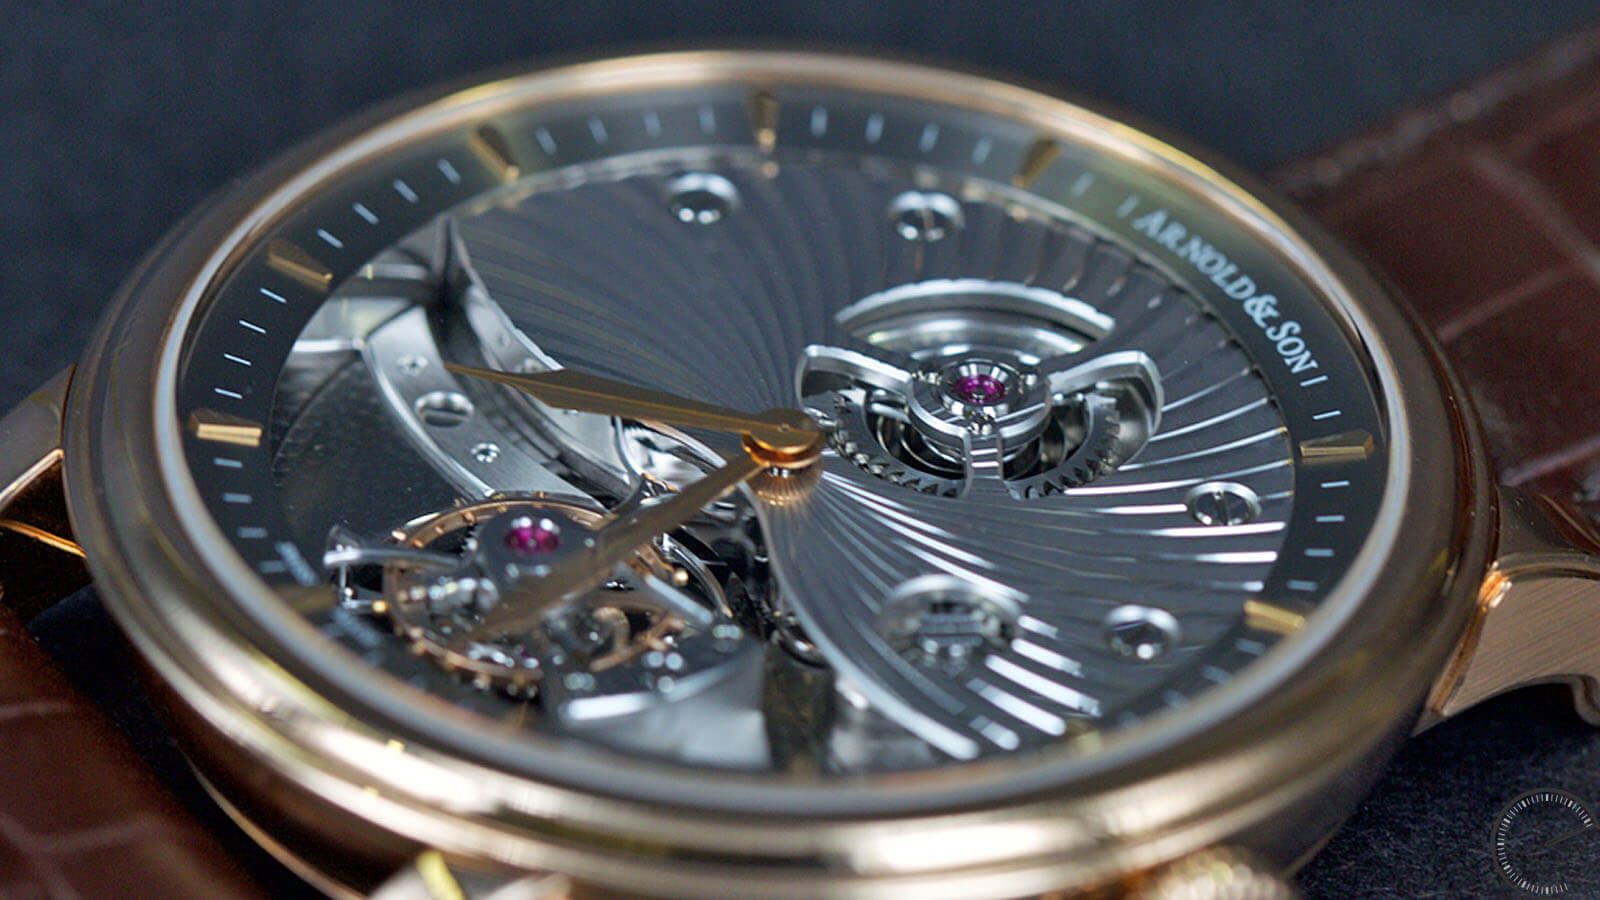 Image of Arnold & Son TE8 - Tourbillon watch